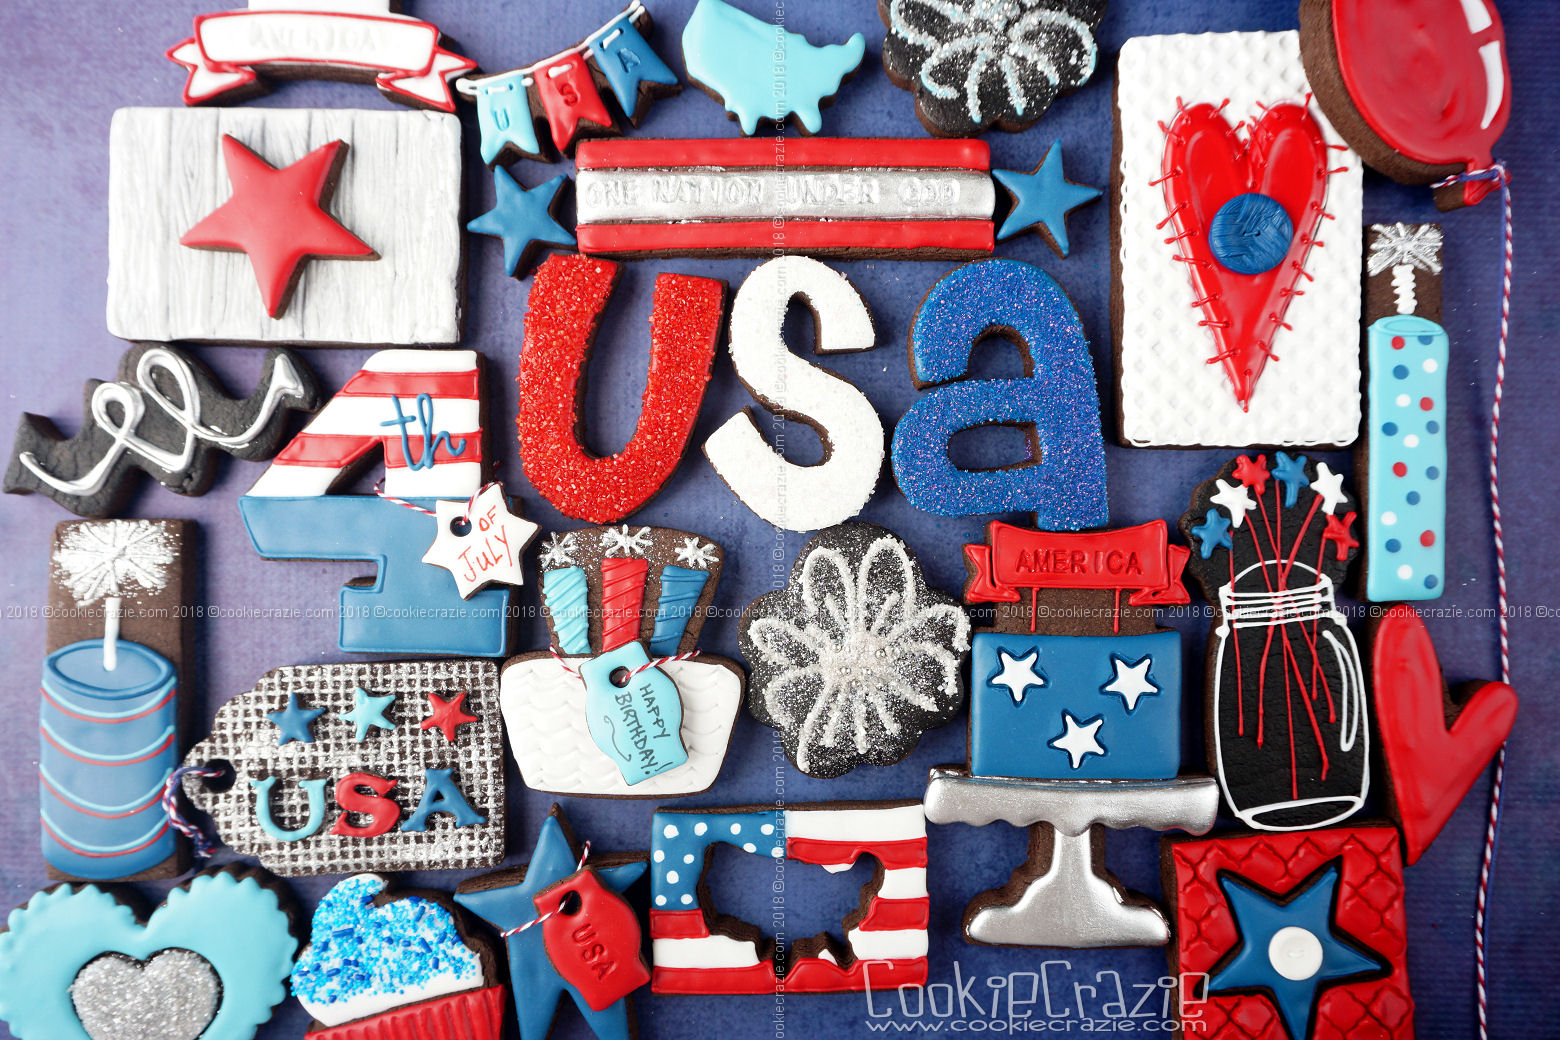 Happy 4th Of July America Decorated Cookie Collection Cookiecrazie